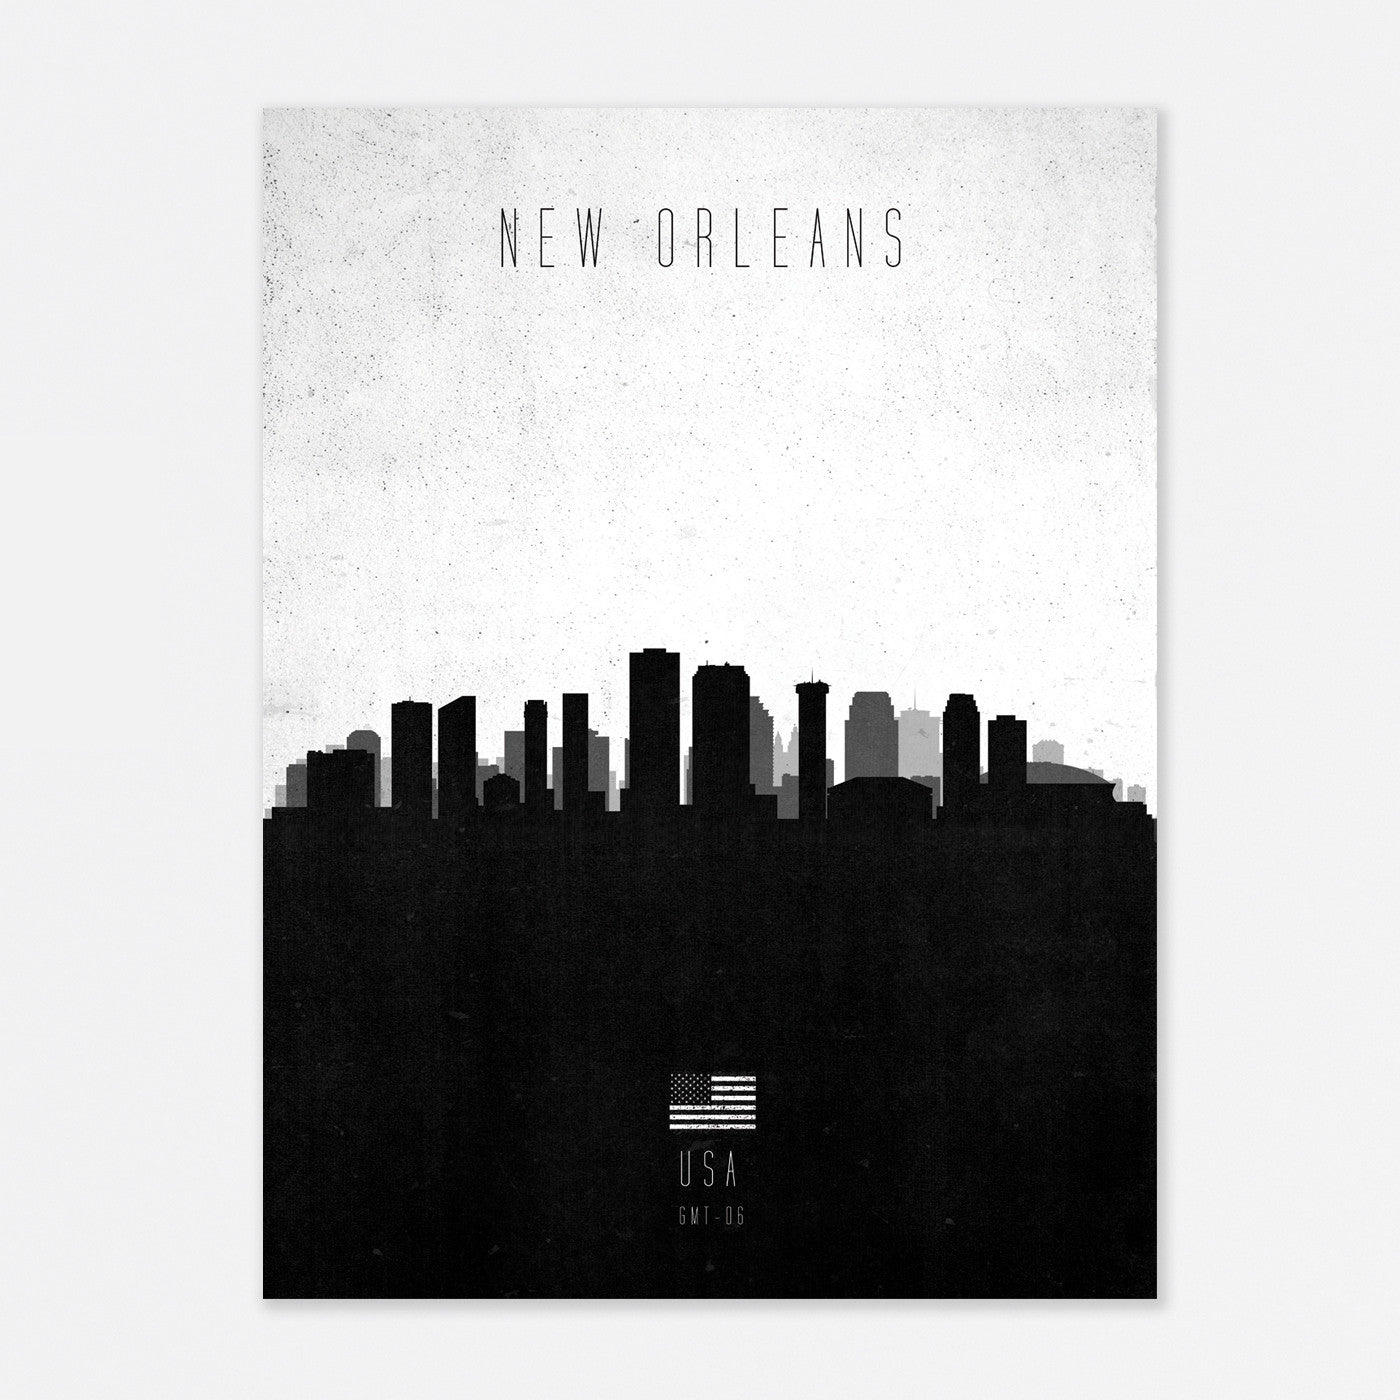 New Orleans: GMT -06